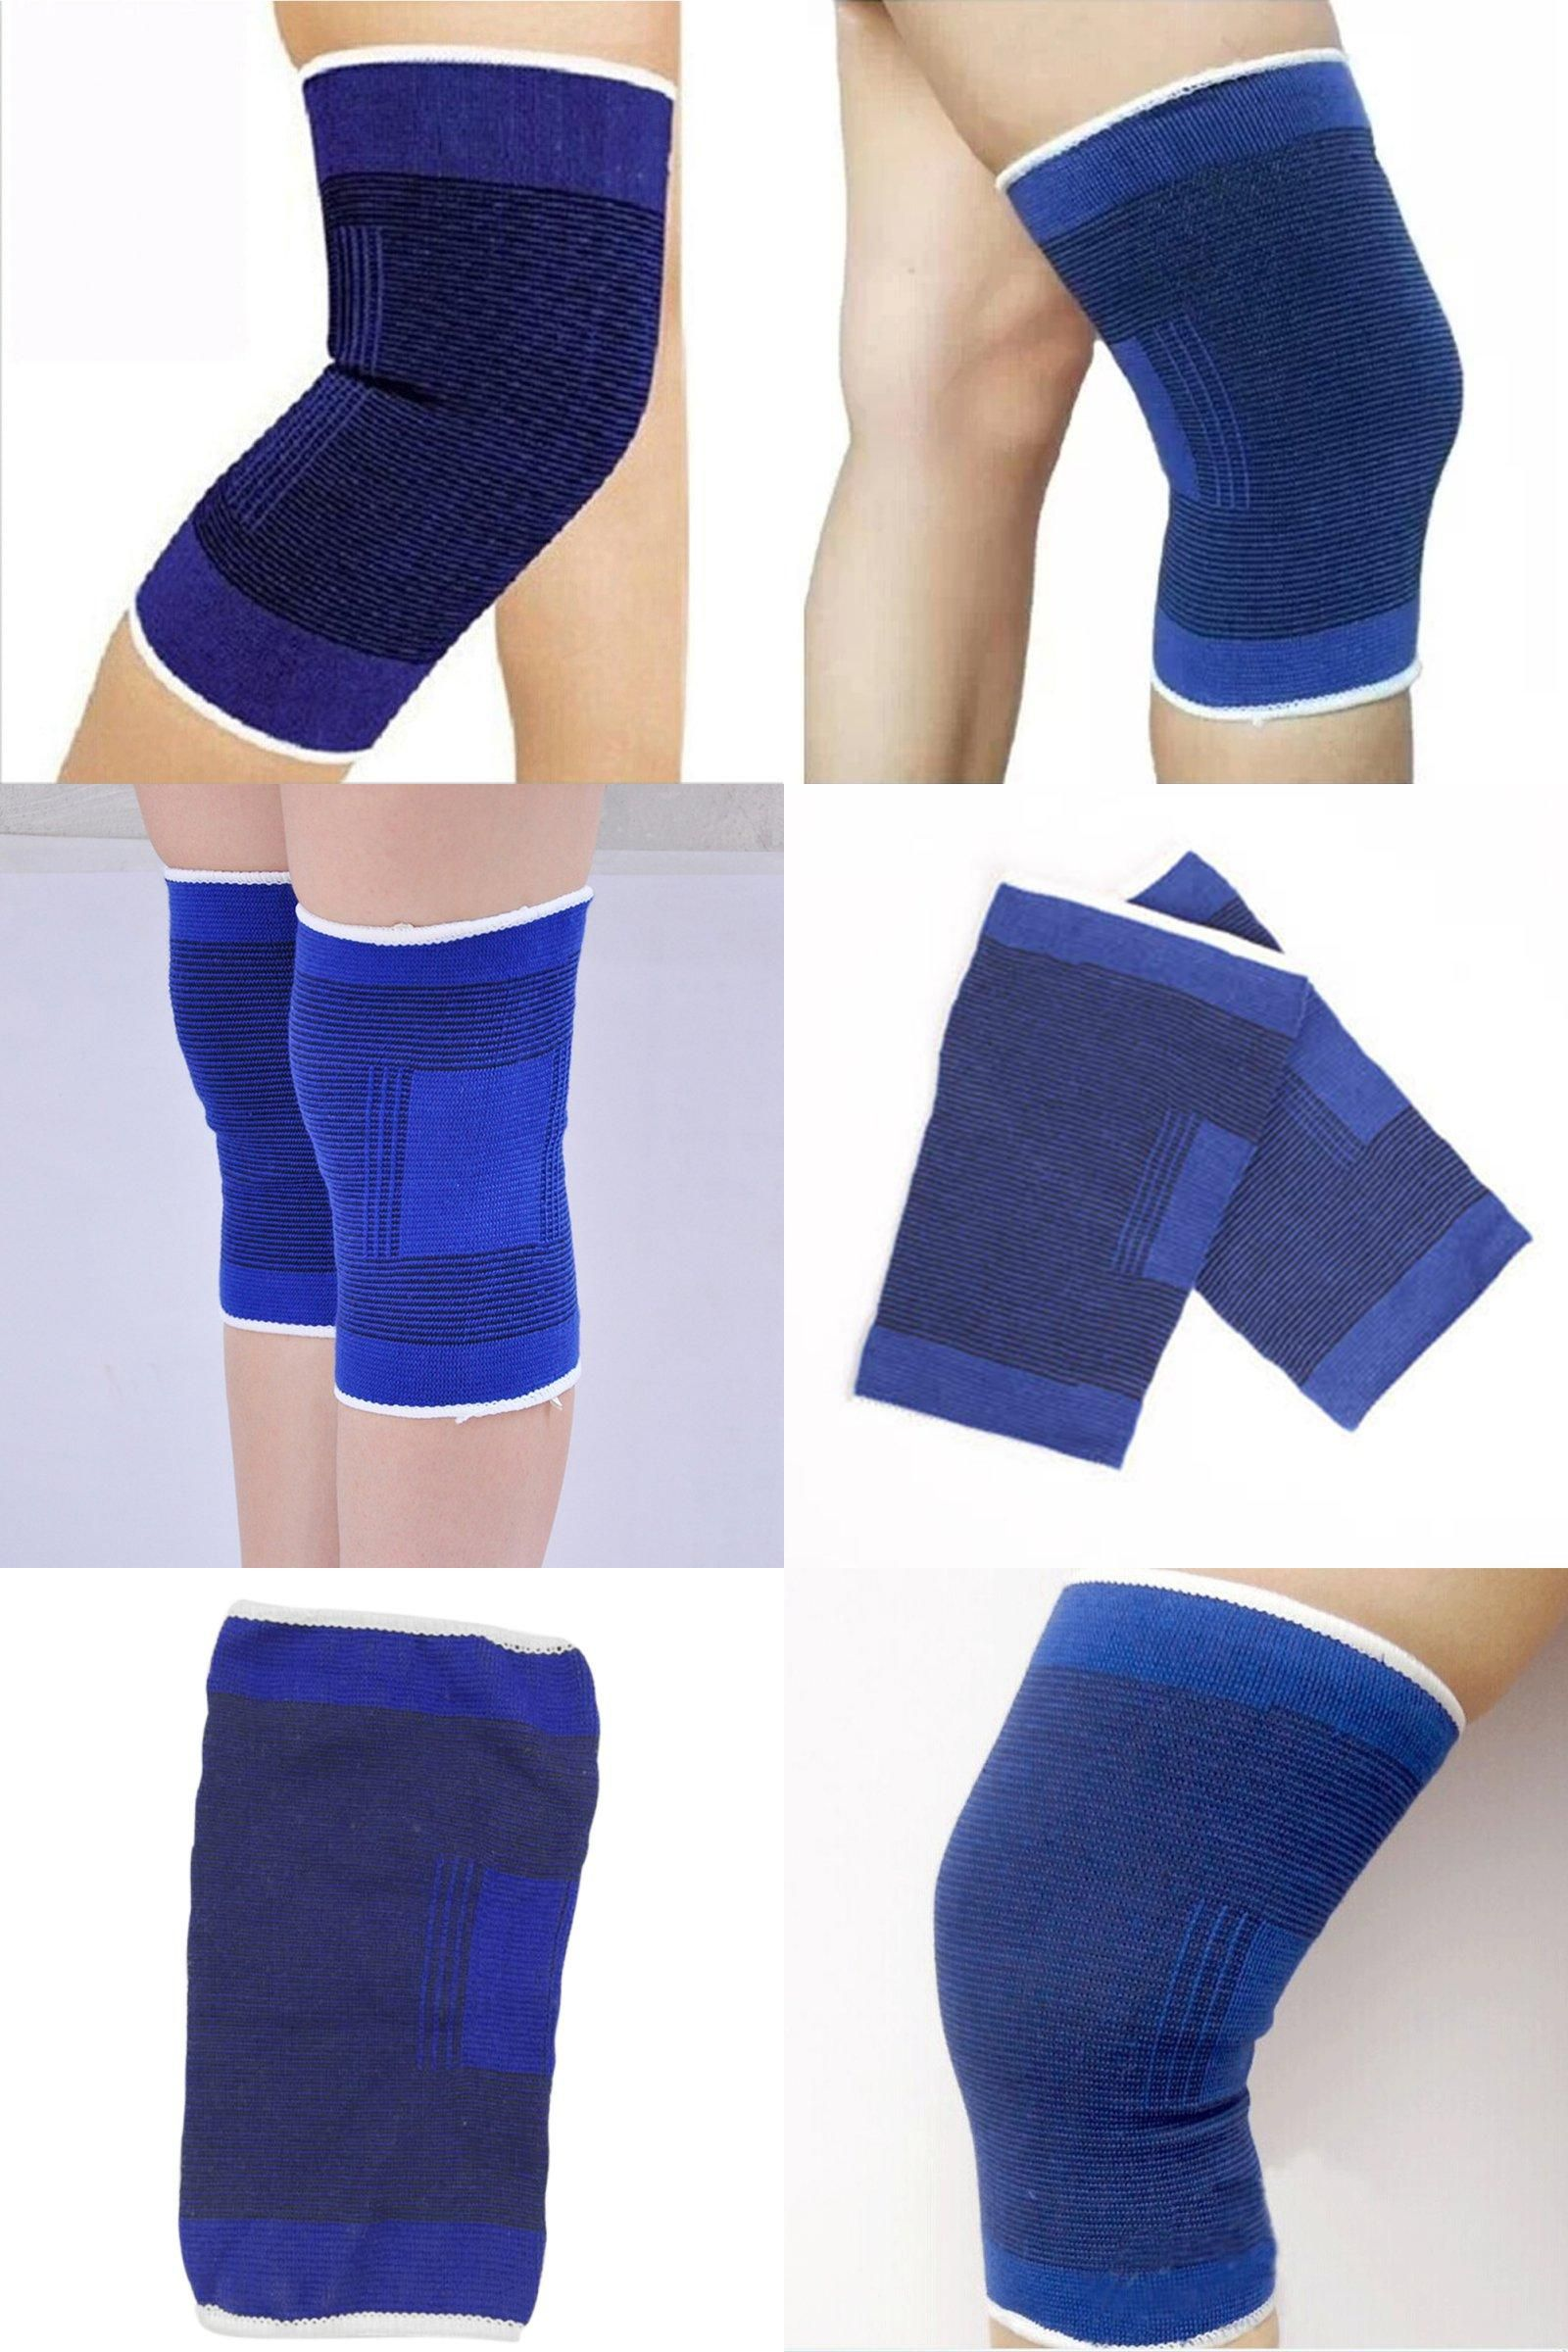 Visit To Buy Kneepads Protection Gear Sport Safety Knee Elastic Brace Muscle Support Elastic Elbow Guard Protector A Protection Gear Sport Safety Knee Brace